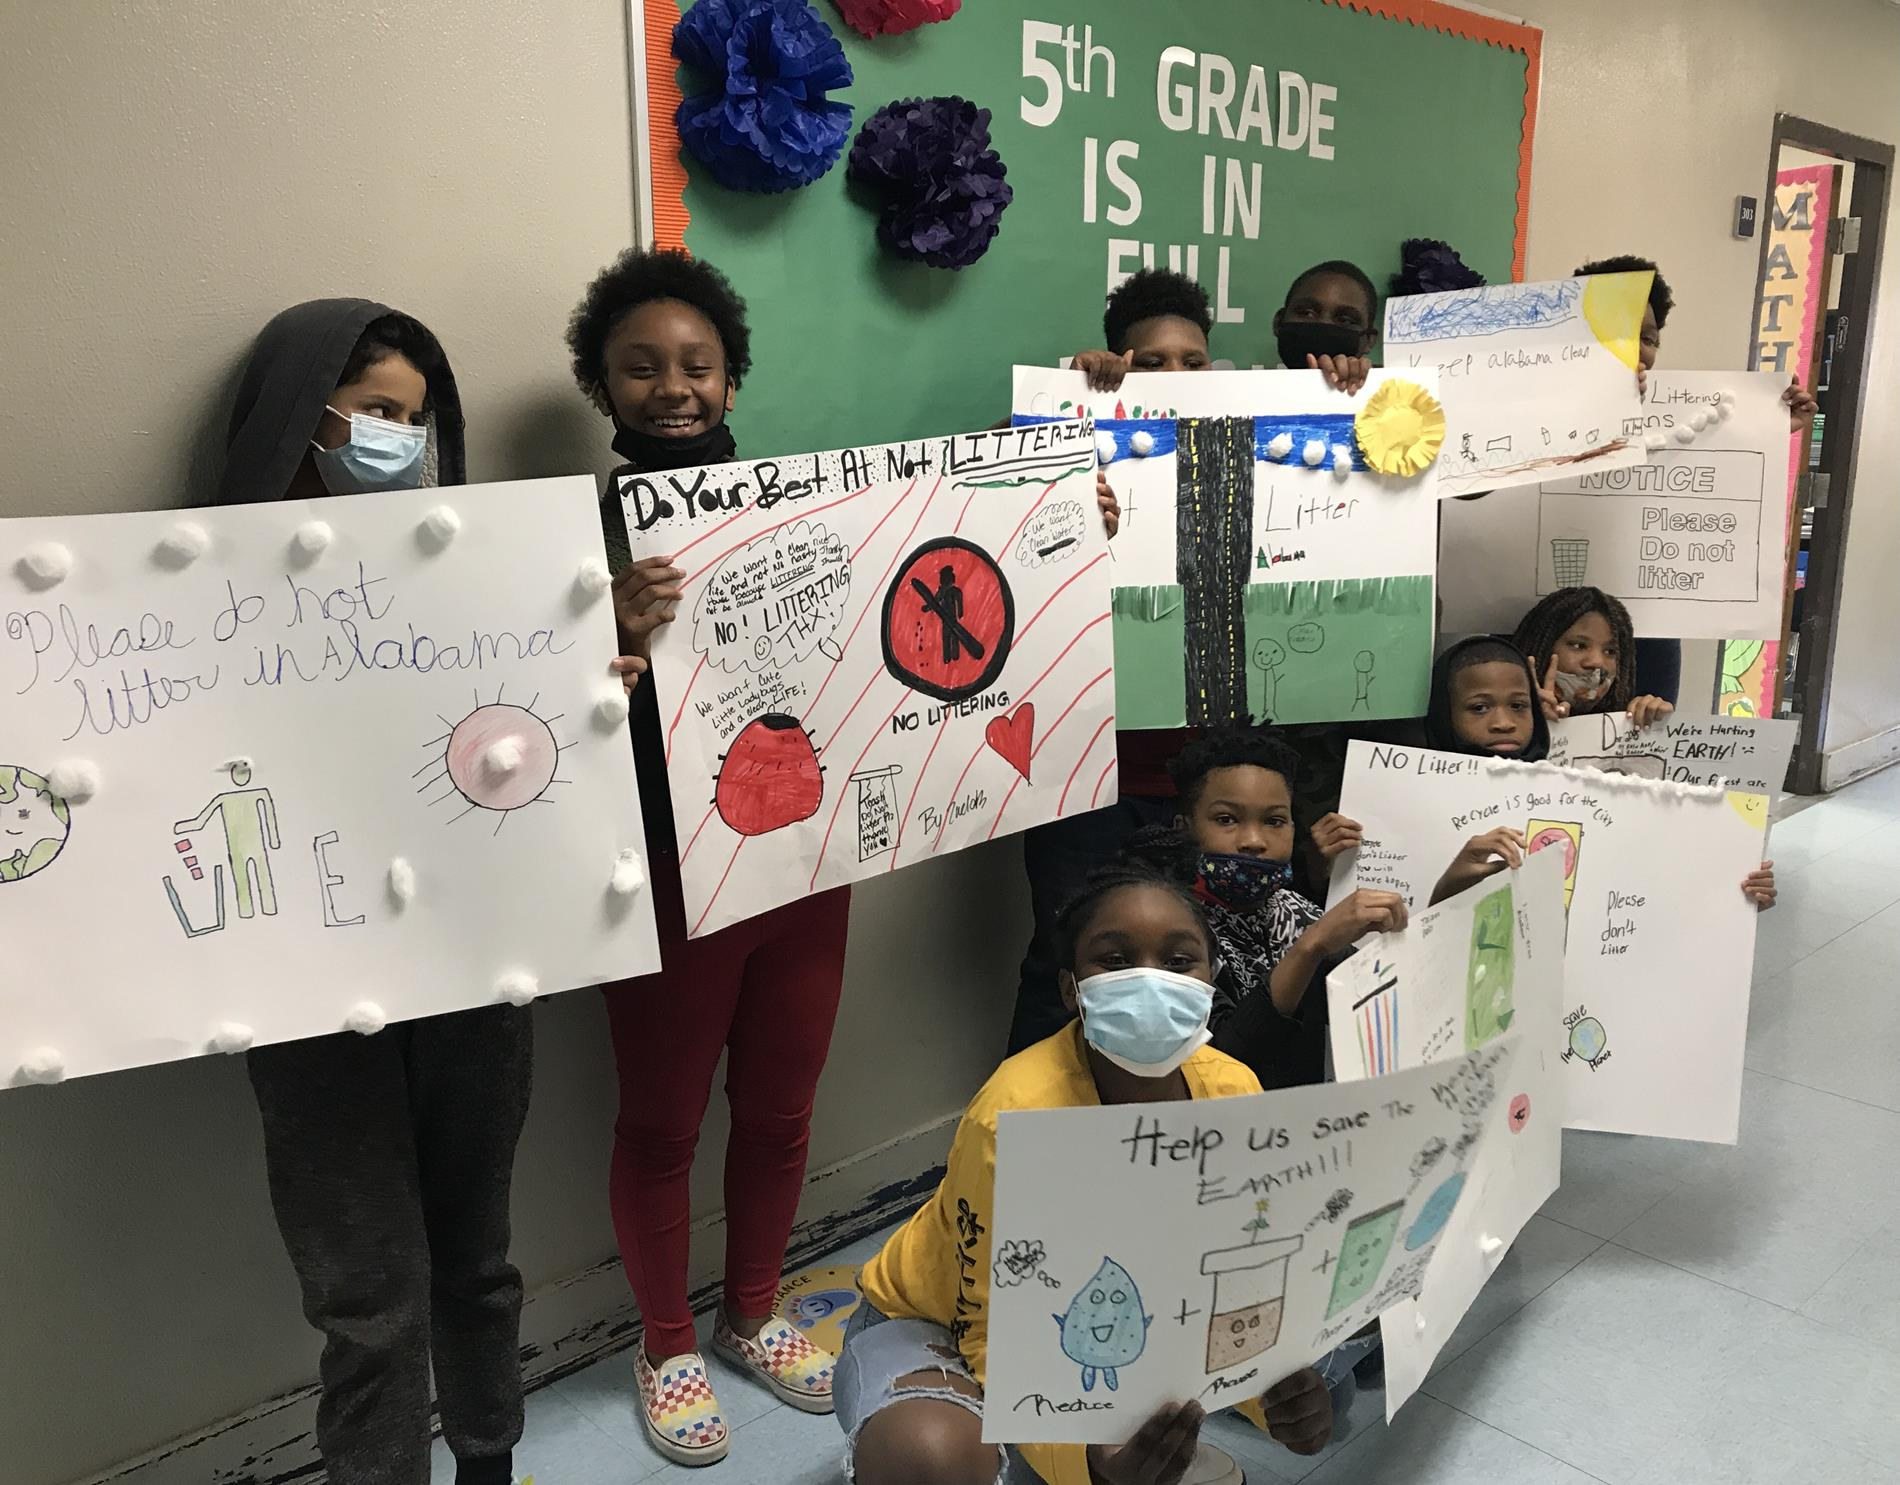 Posters fro Clean Campus Campaign 5th Grade Shanlever